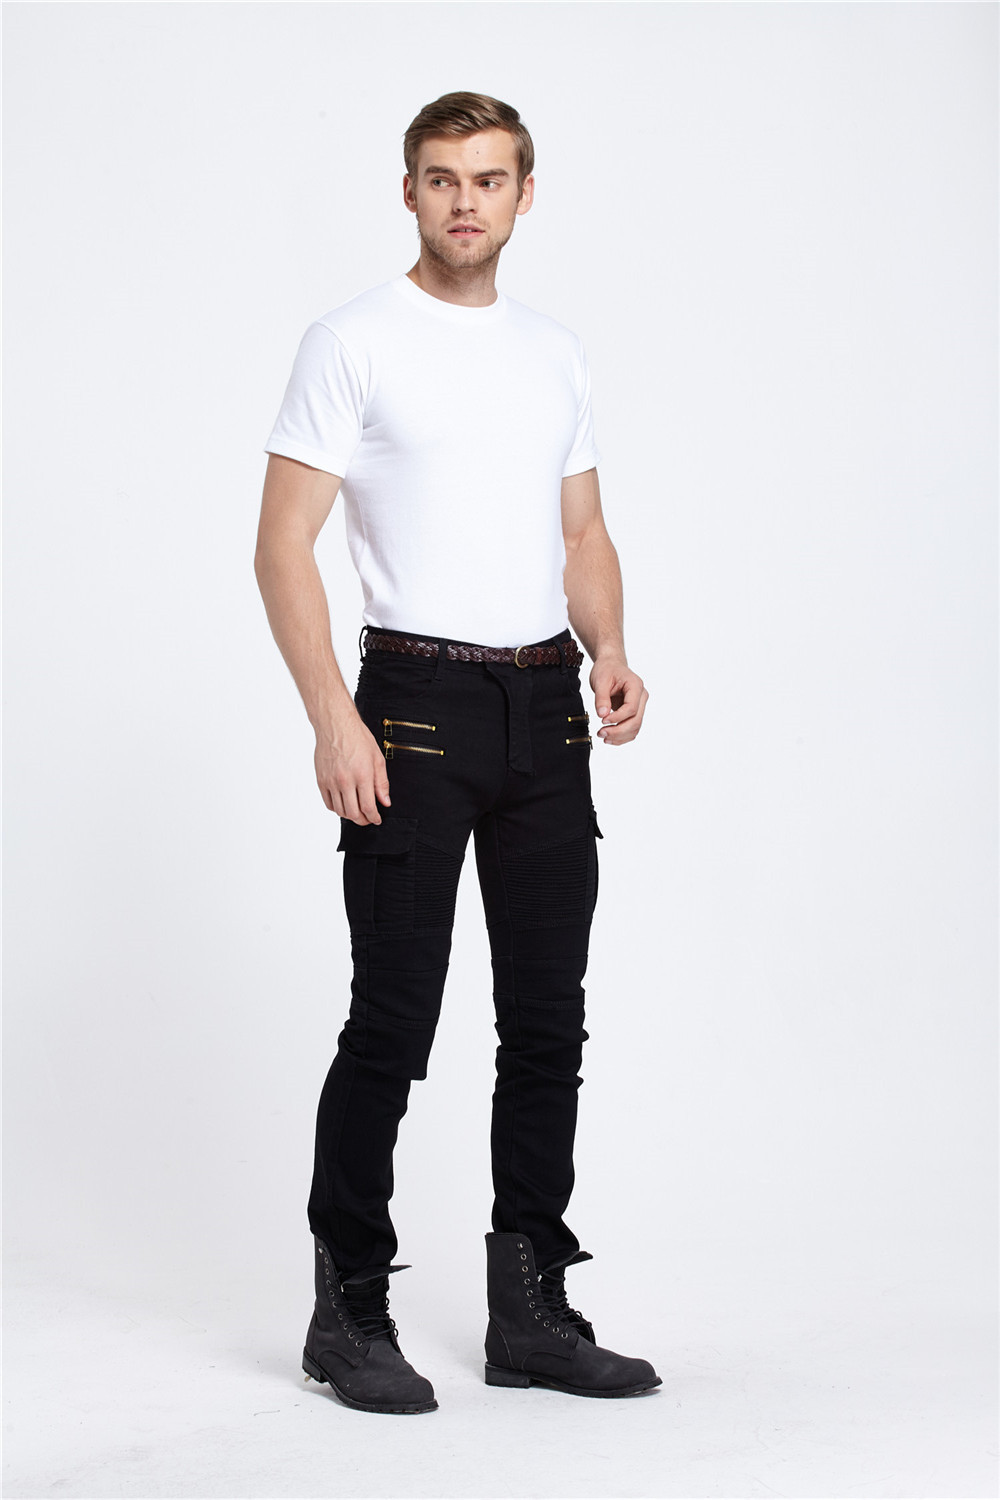 Denim custom mens distressed slim unisex skinny biker formal jeans